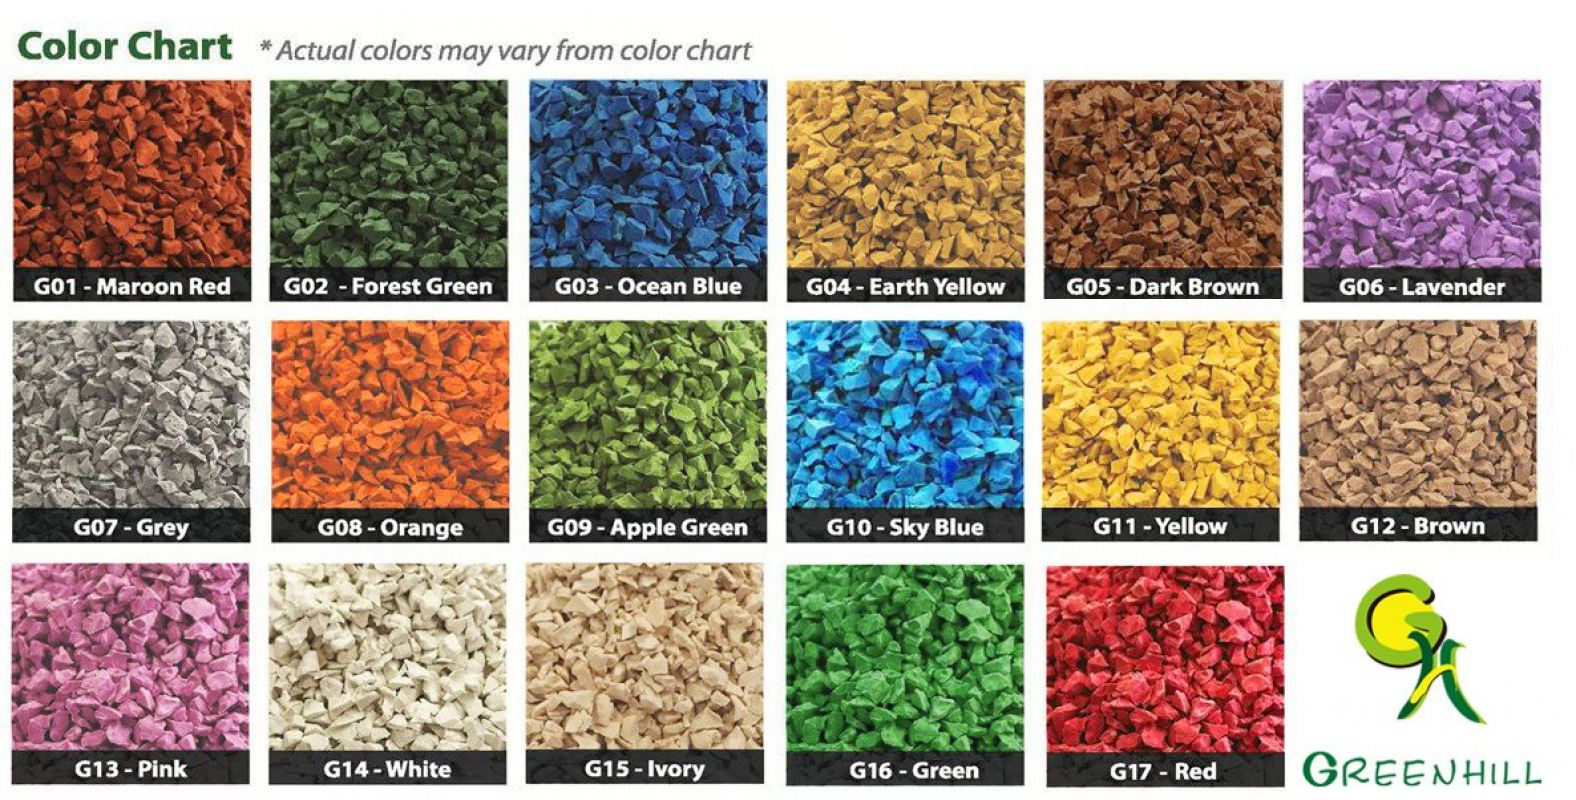 EPDM Granules EPDM Granules Ipoh, Perak, Malaysia. Manufacturer, Supplier, Supplies, Supply | Greenhill Marketing & Solution Sdn Bhd